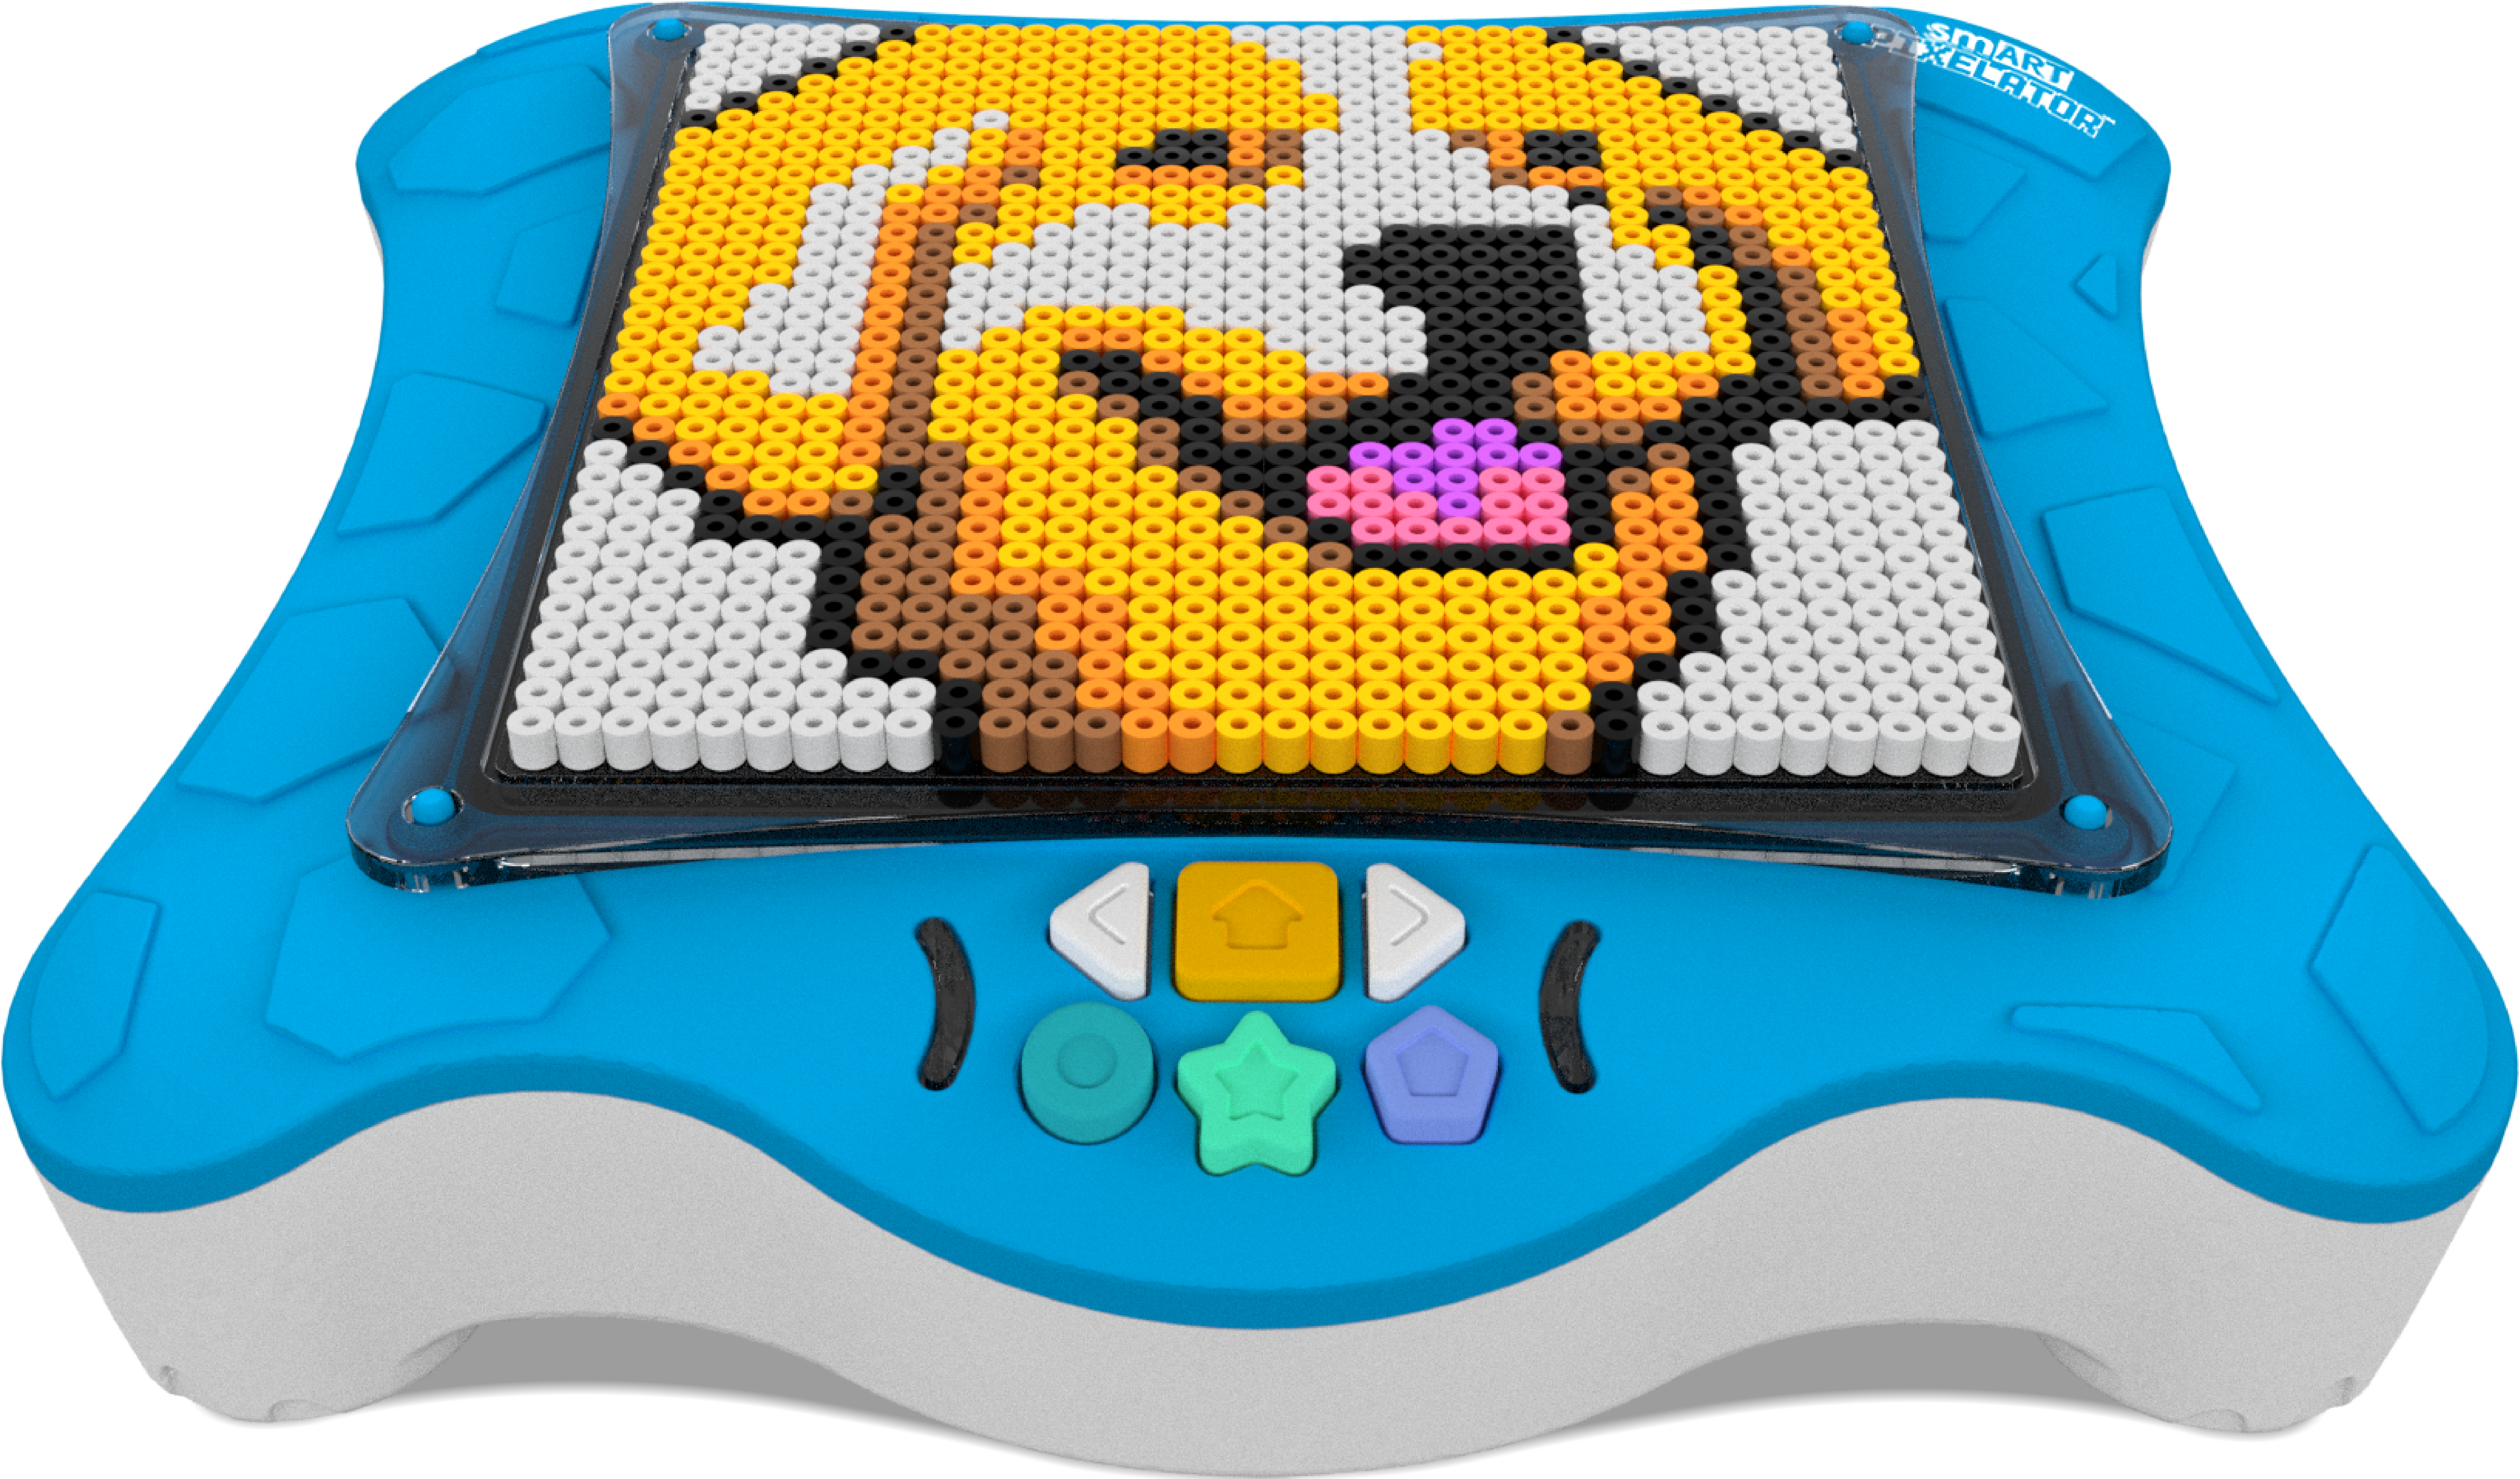 Smart Pixelator Create Your Own 3d Pixelated Art Projects Gift For Kids Ages 7 Walmart Com Arts And Crafts Kits Gifts For Kids Arts And Crafts For Kids